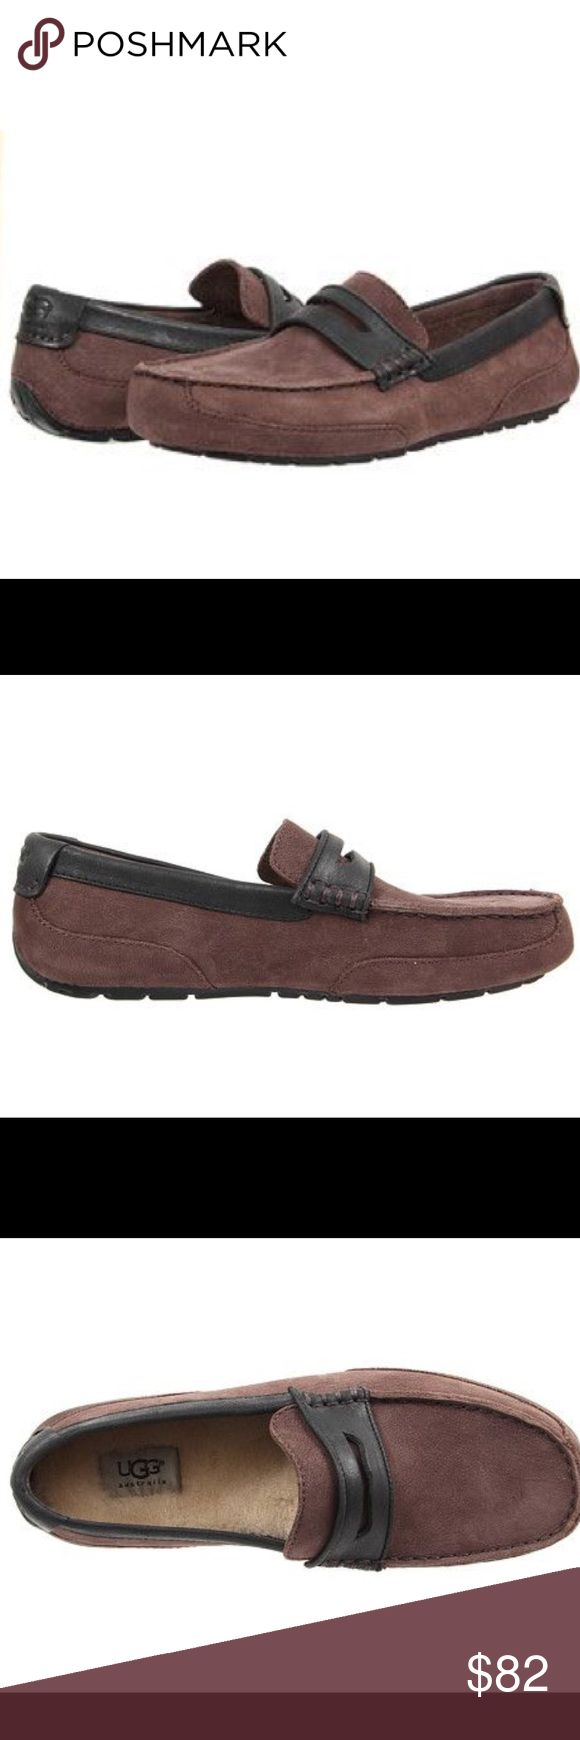 New Ugg Tucker moccasin  loafer slip on shoes ❤️☃️ New Ugg Tucker loafer with the comfort of a slipper and looks loafer Size 18 Color brown  Shearling insoles and easy slip on style and molded rubber outsole, all providing a durable and comfortable extended wear!  Finished in nubuck upper, soft suede lining and embossed UGG® logo on the back heel, these relaxed yet rich loafers are comfortable and has an Easy slip on style  Molded rubber outsole Finished in nubuck upper 100% authentic UGG…